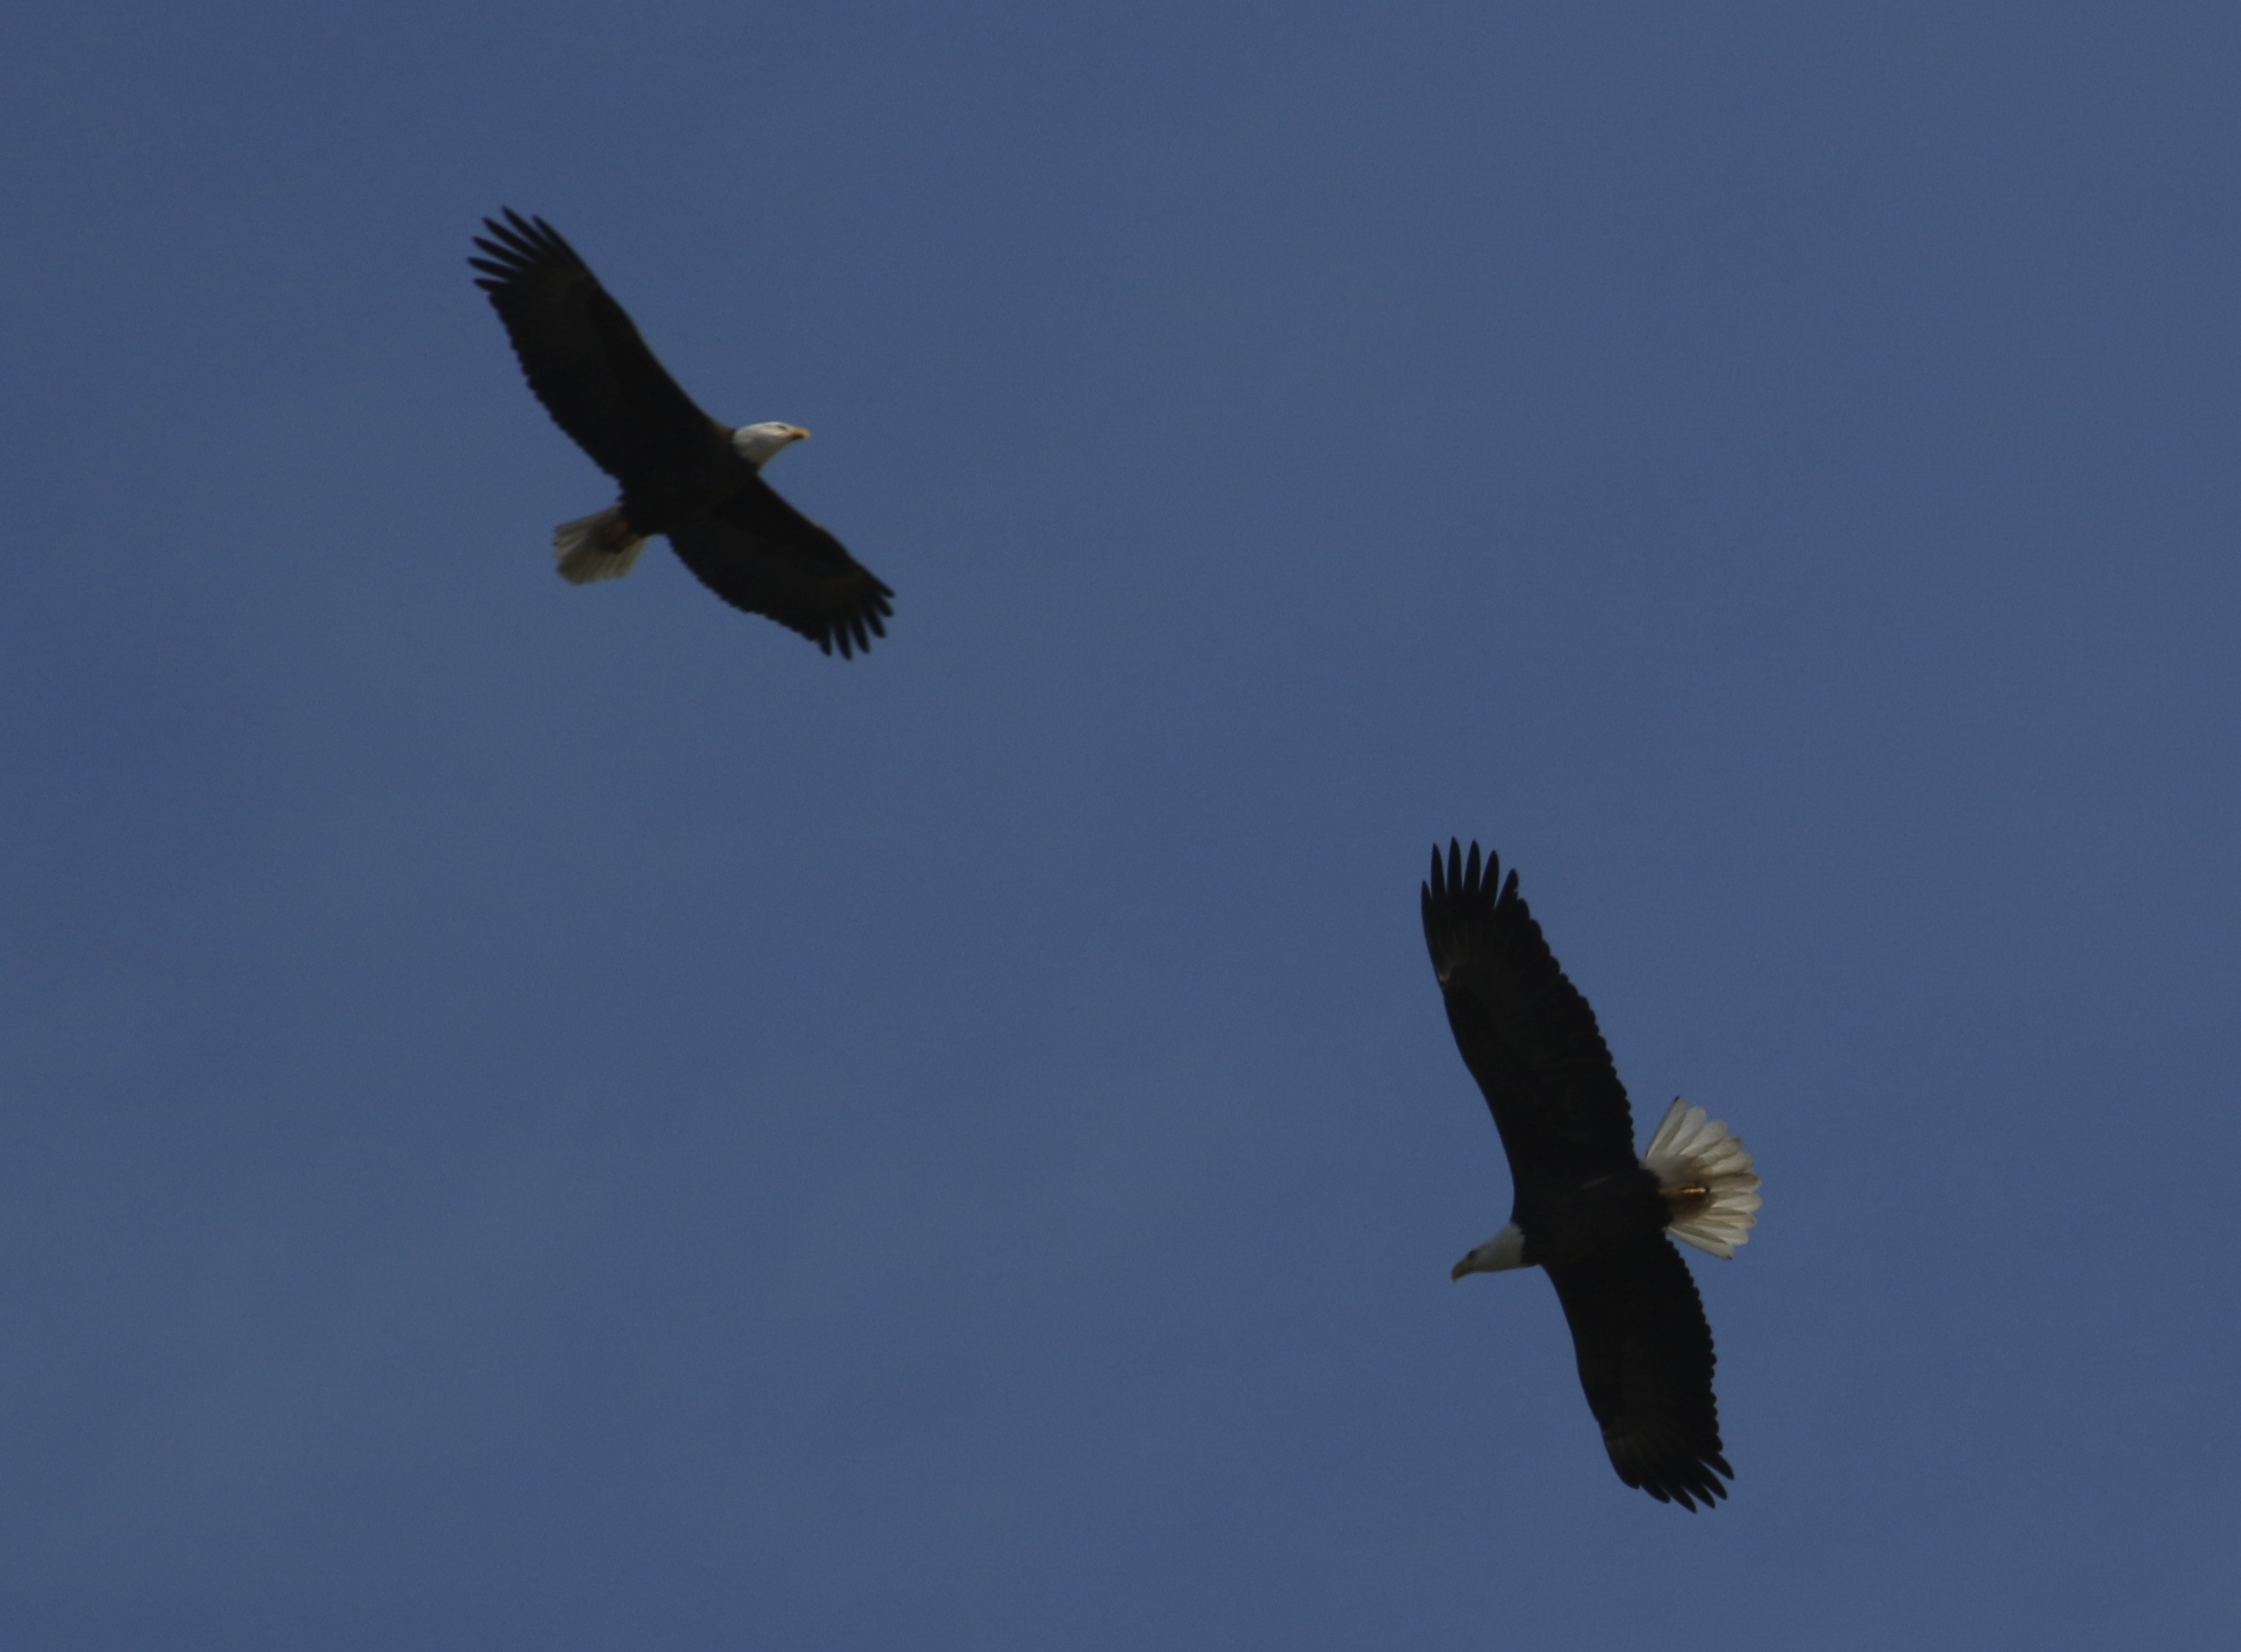 Mating pair of Bald Eagles soar over the Broward near my home. The female is the larger of the pair.